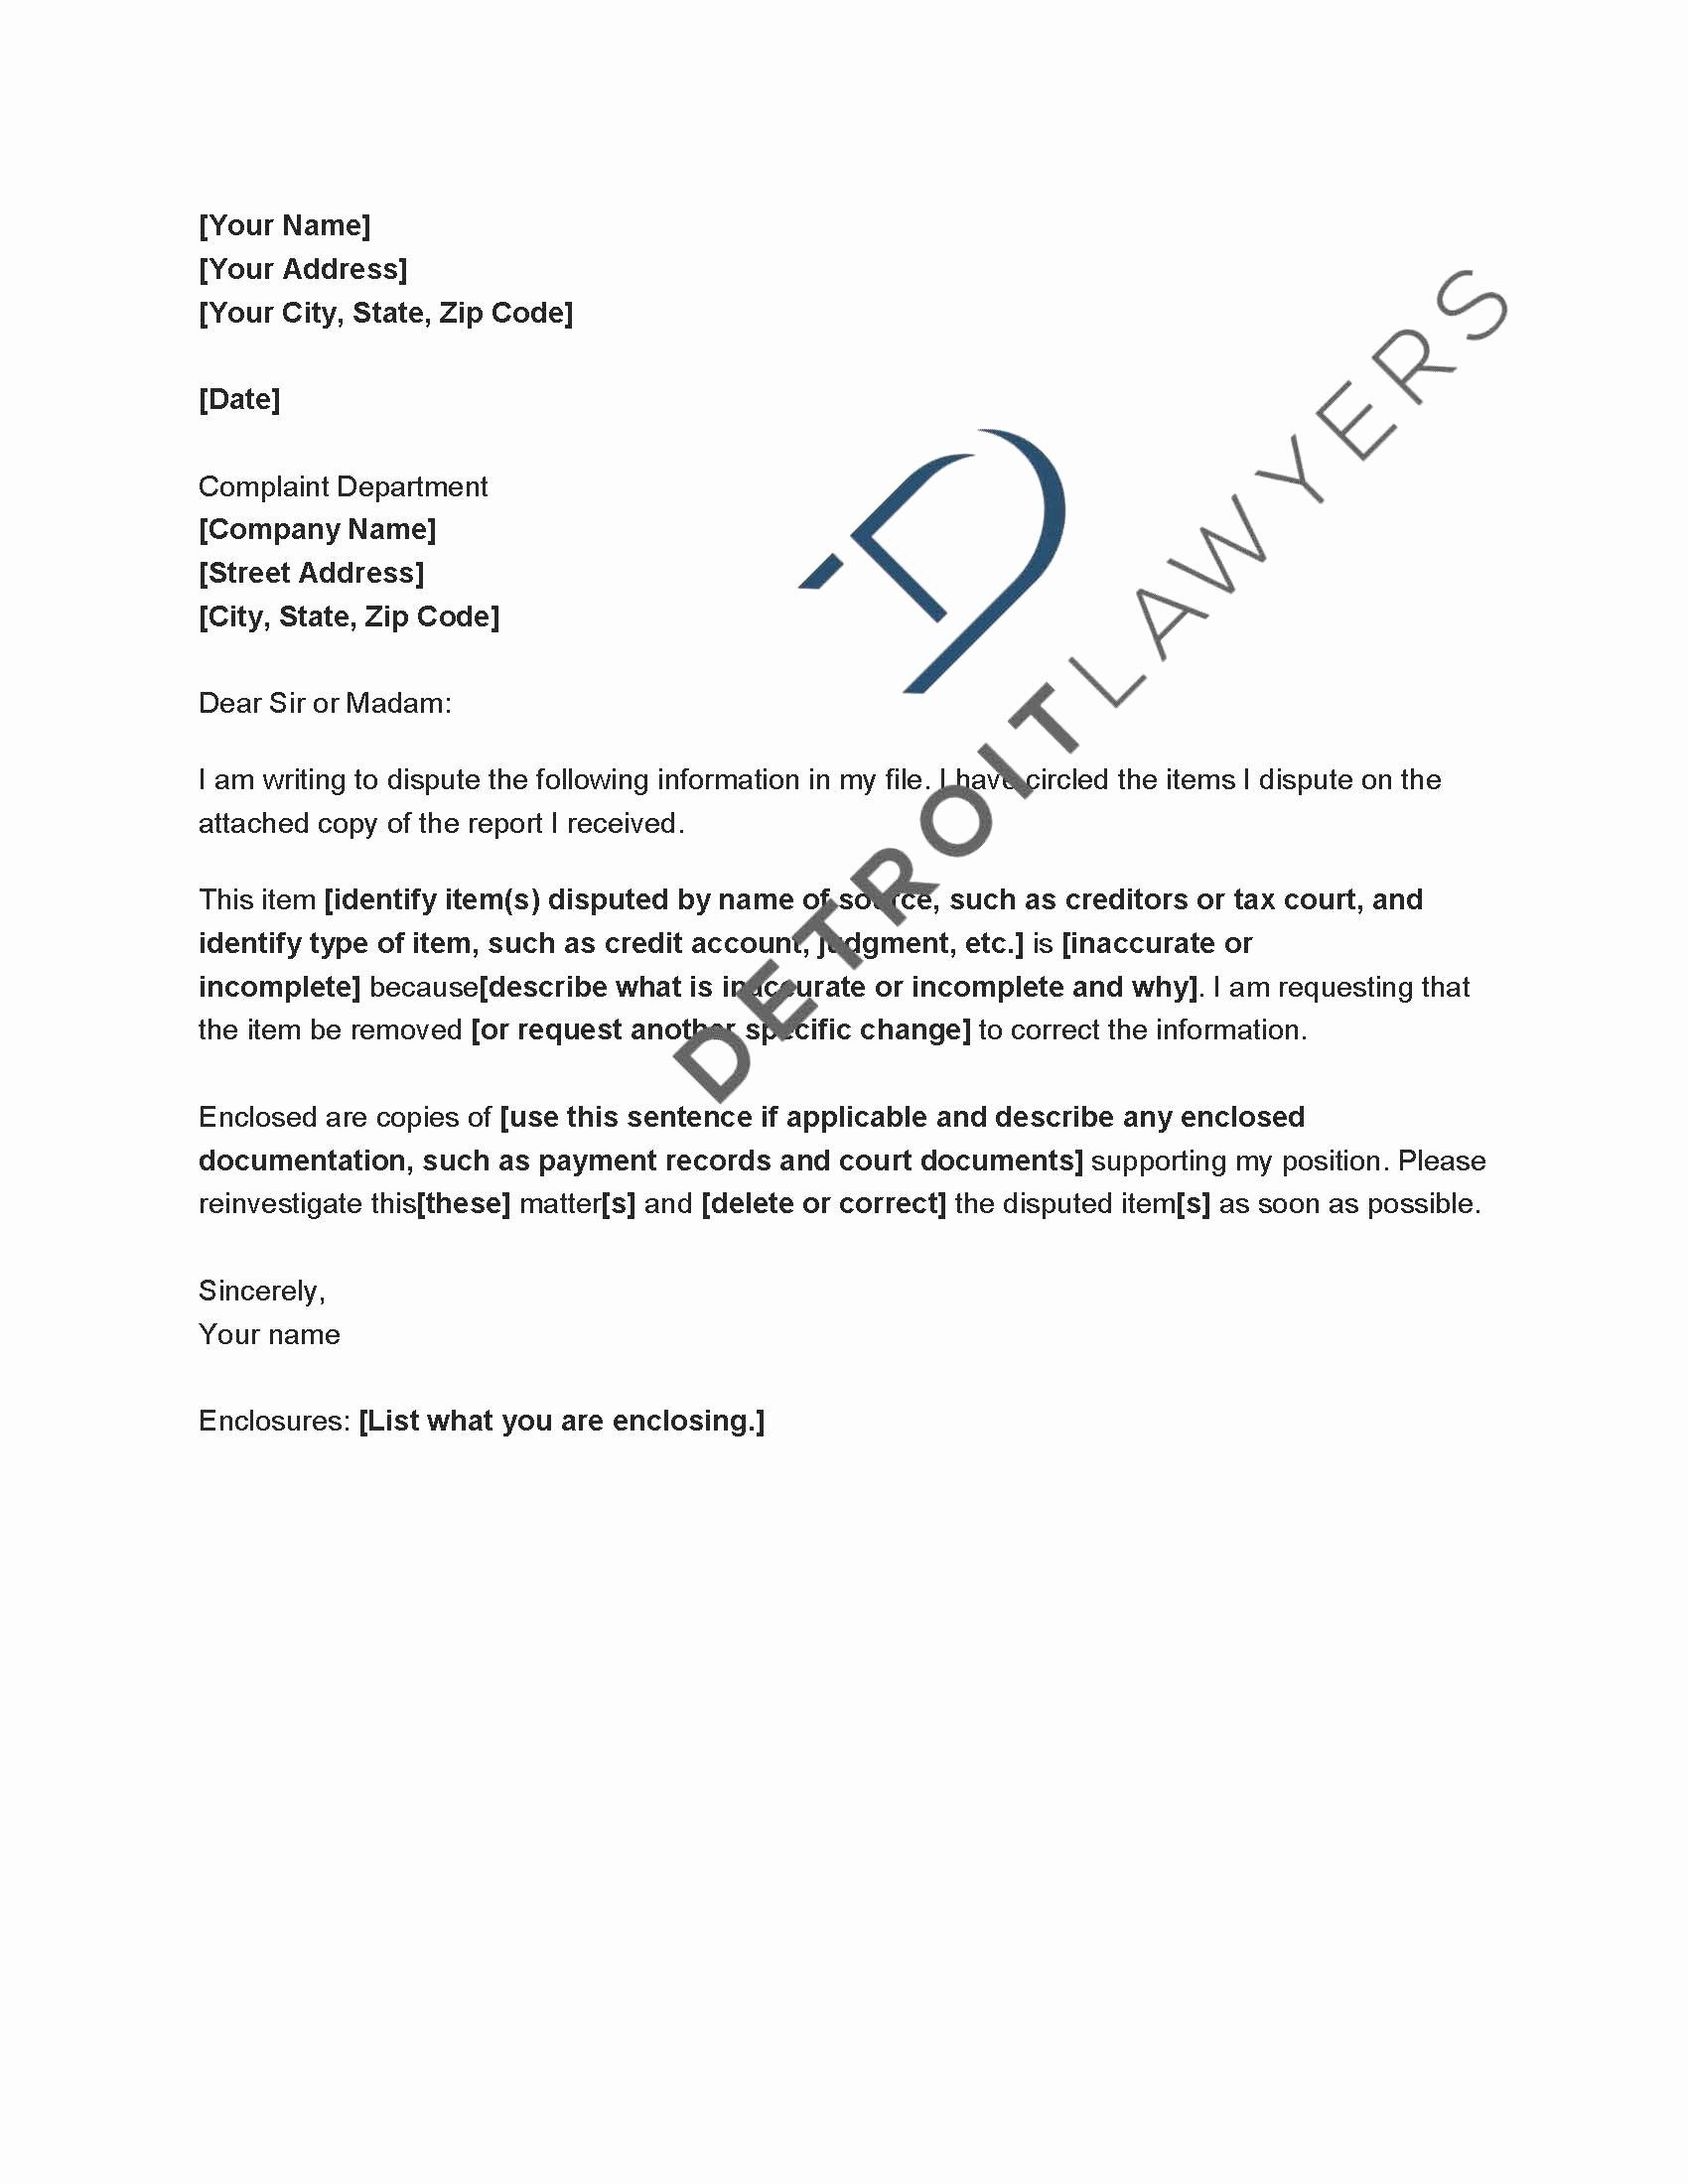 20 Insolvency Letter To Creditors Template Dannybarrantes Template Dispute Letter Template Credit Dispute Letter Template Credit Dispute Letter